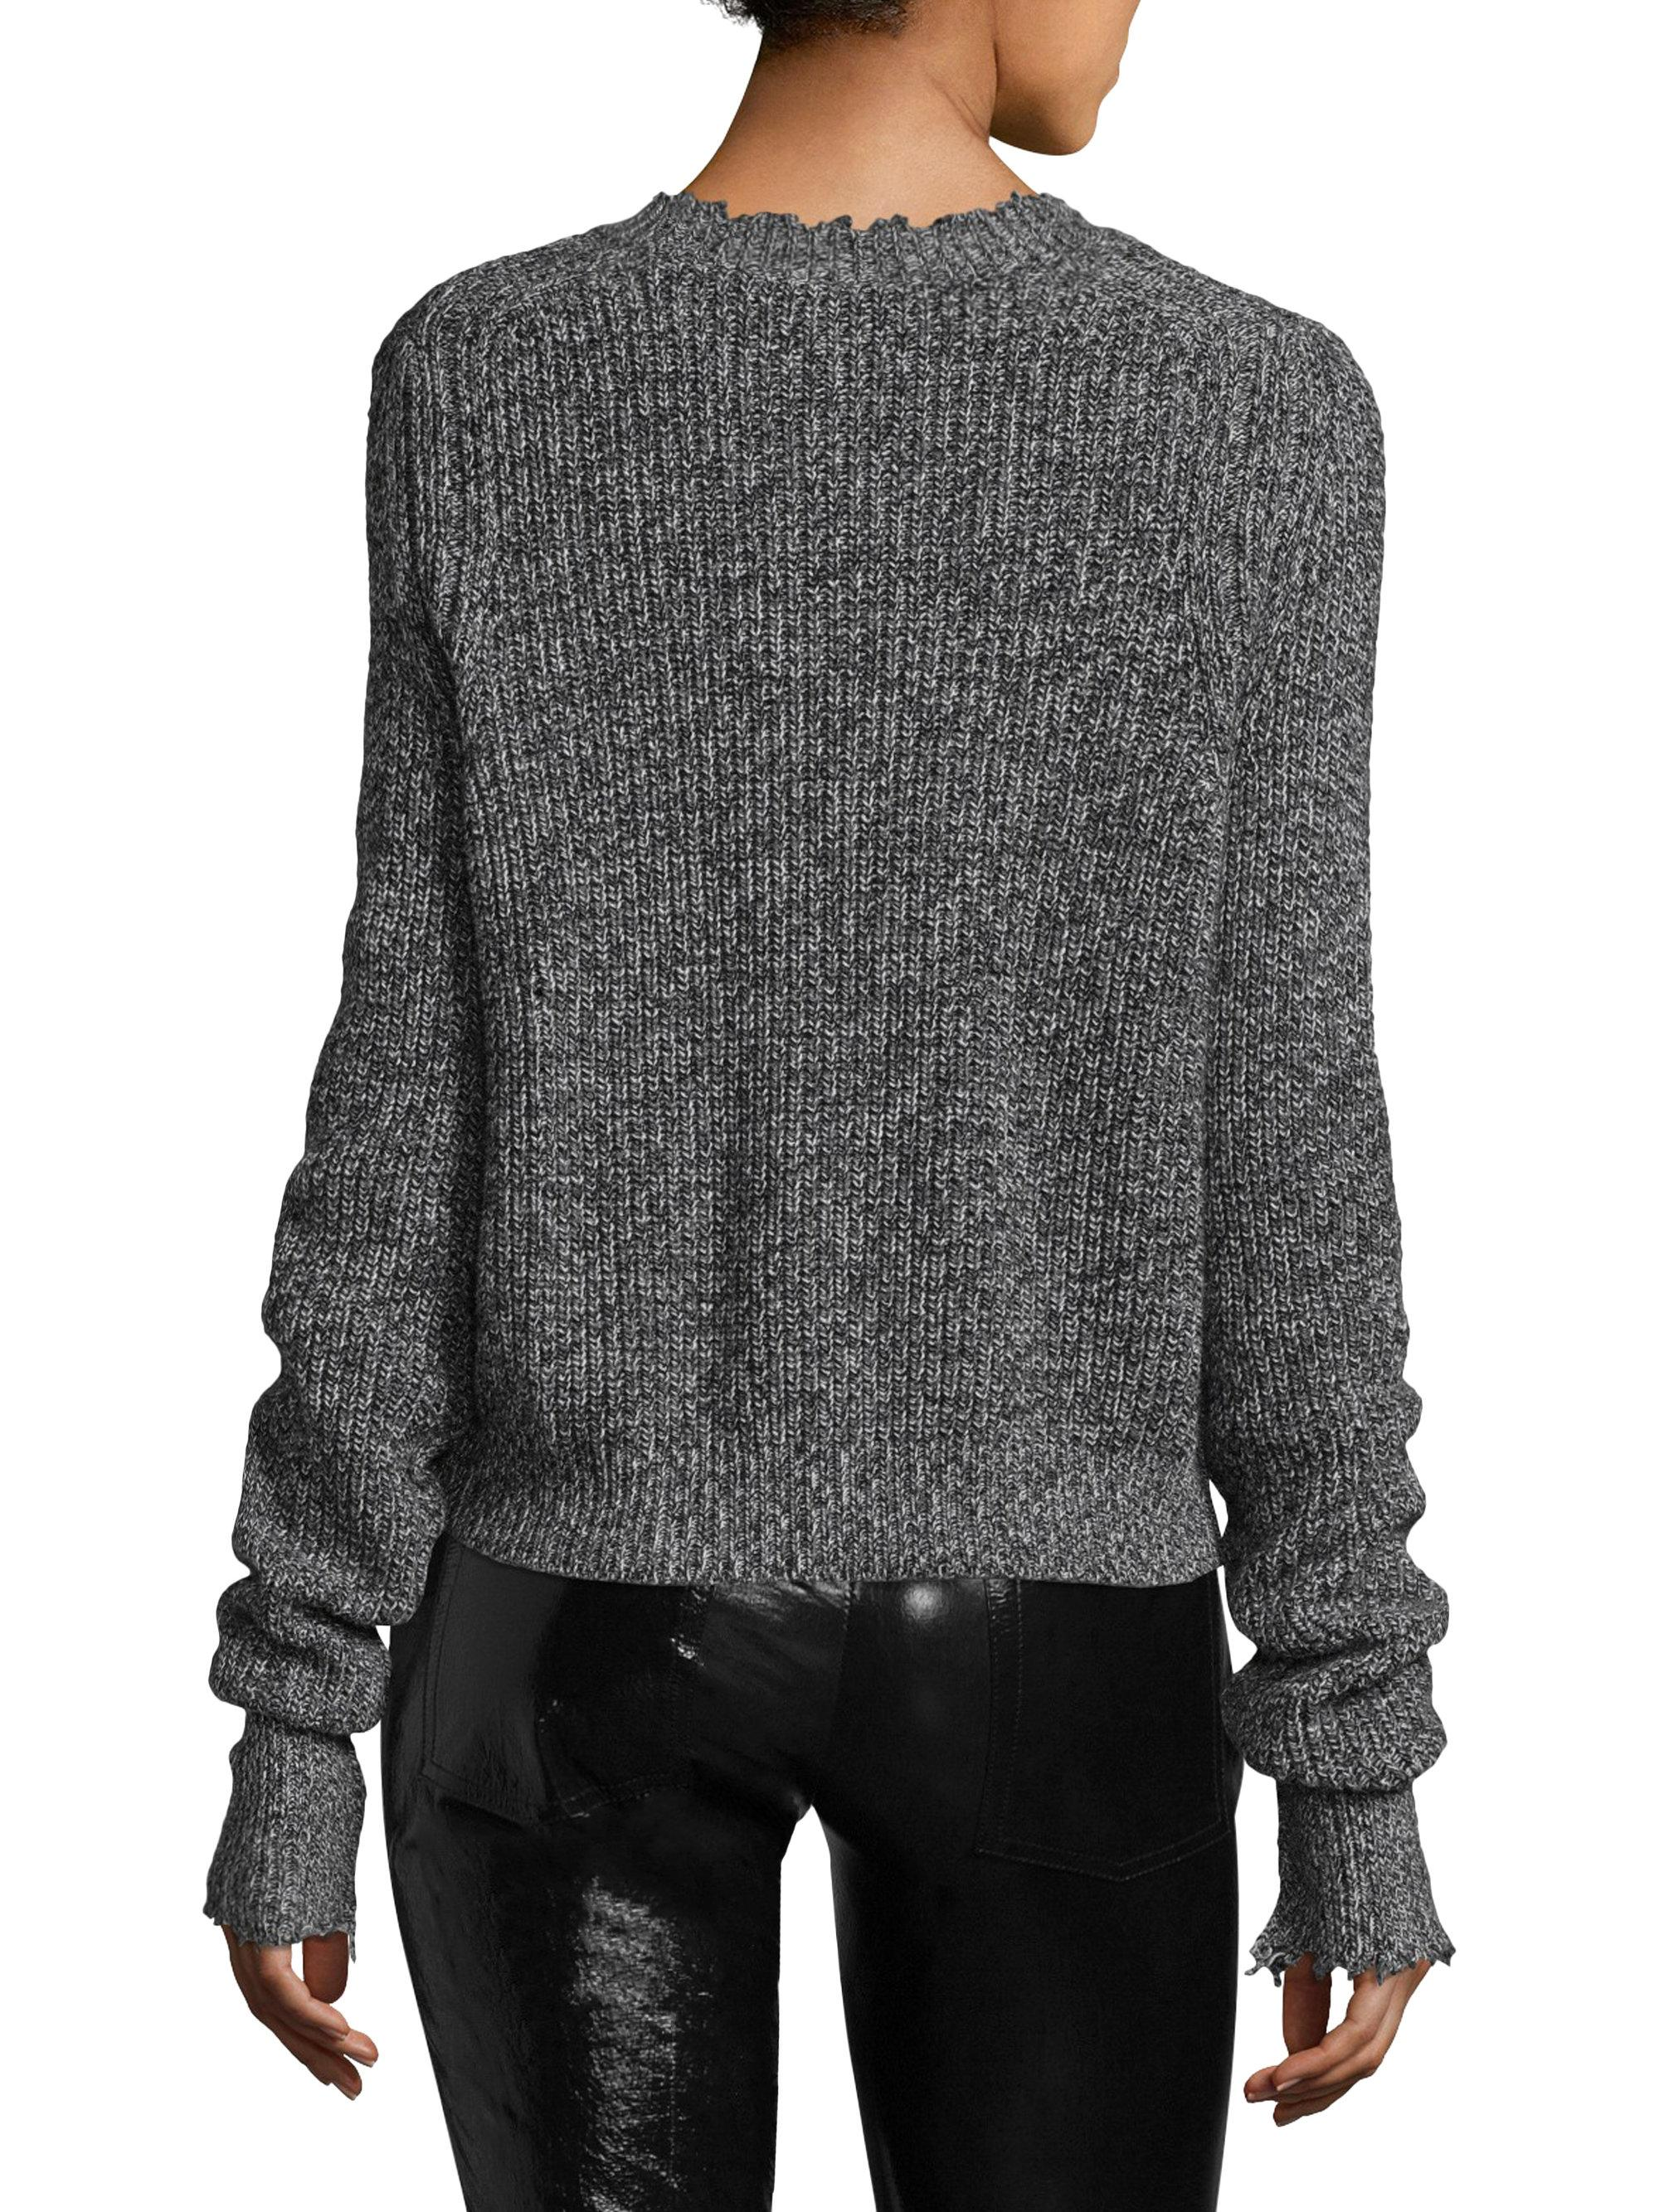 Helmut Lang Distressed Marled Cotton Blend Sweater In Gray Lyst Kaos Grunge Gallery